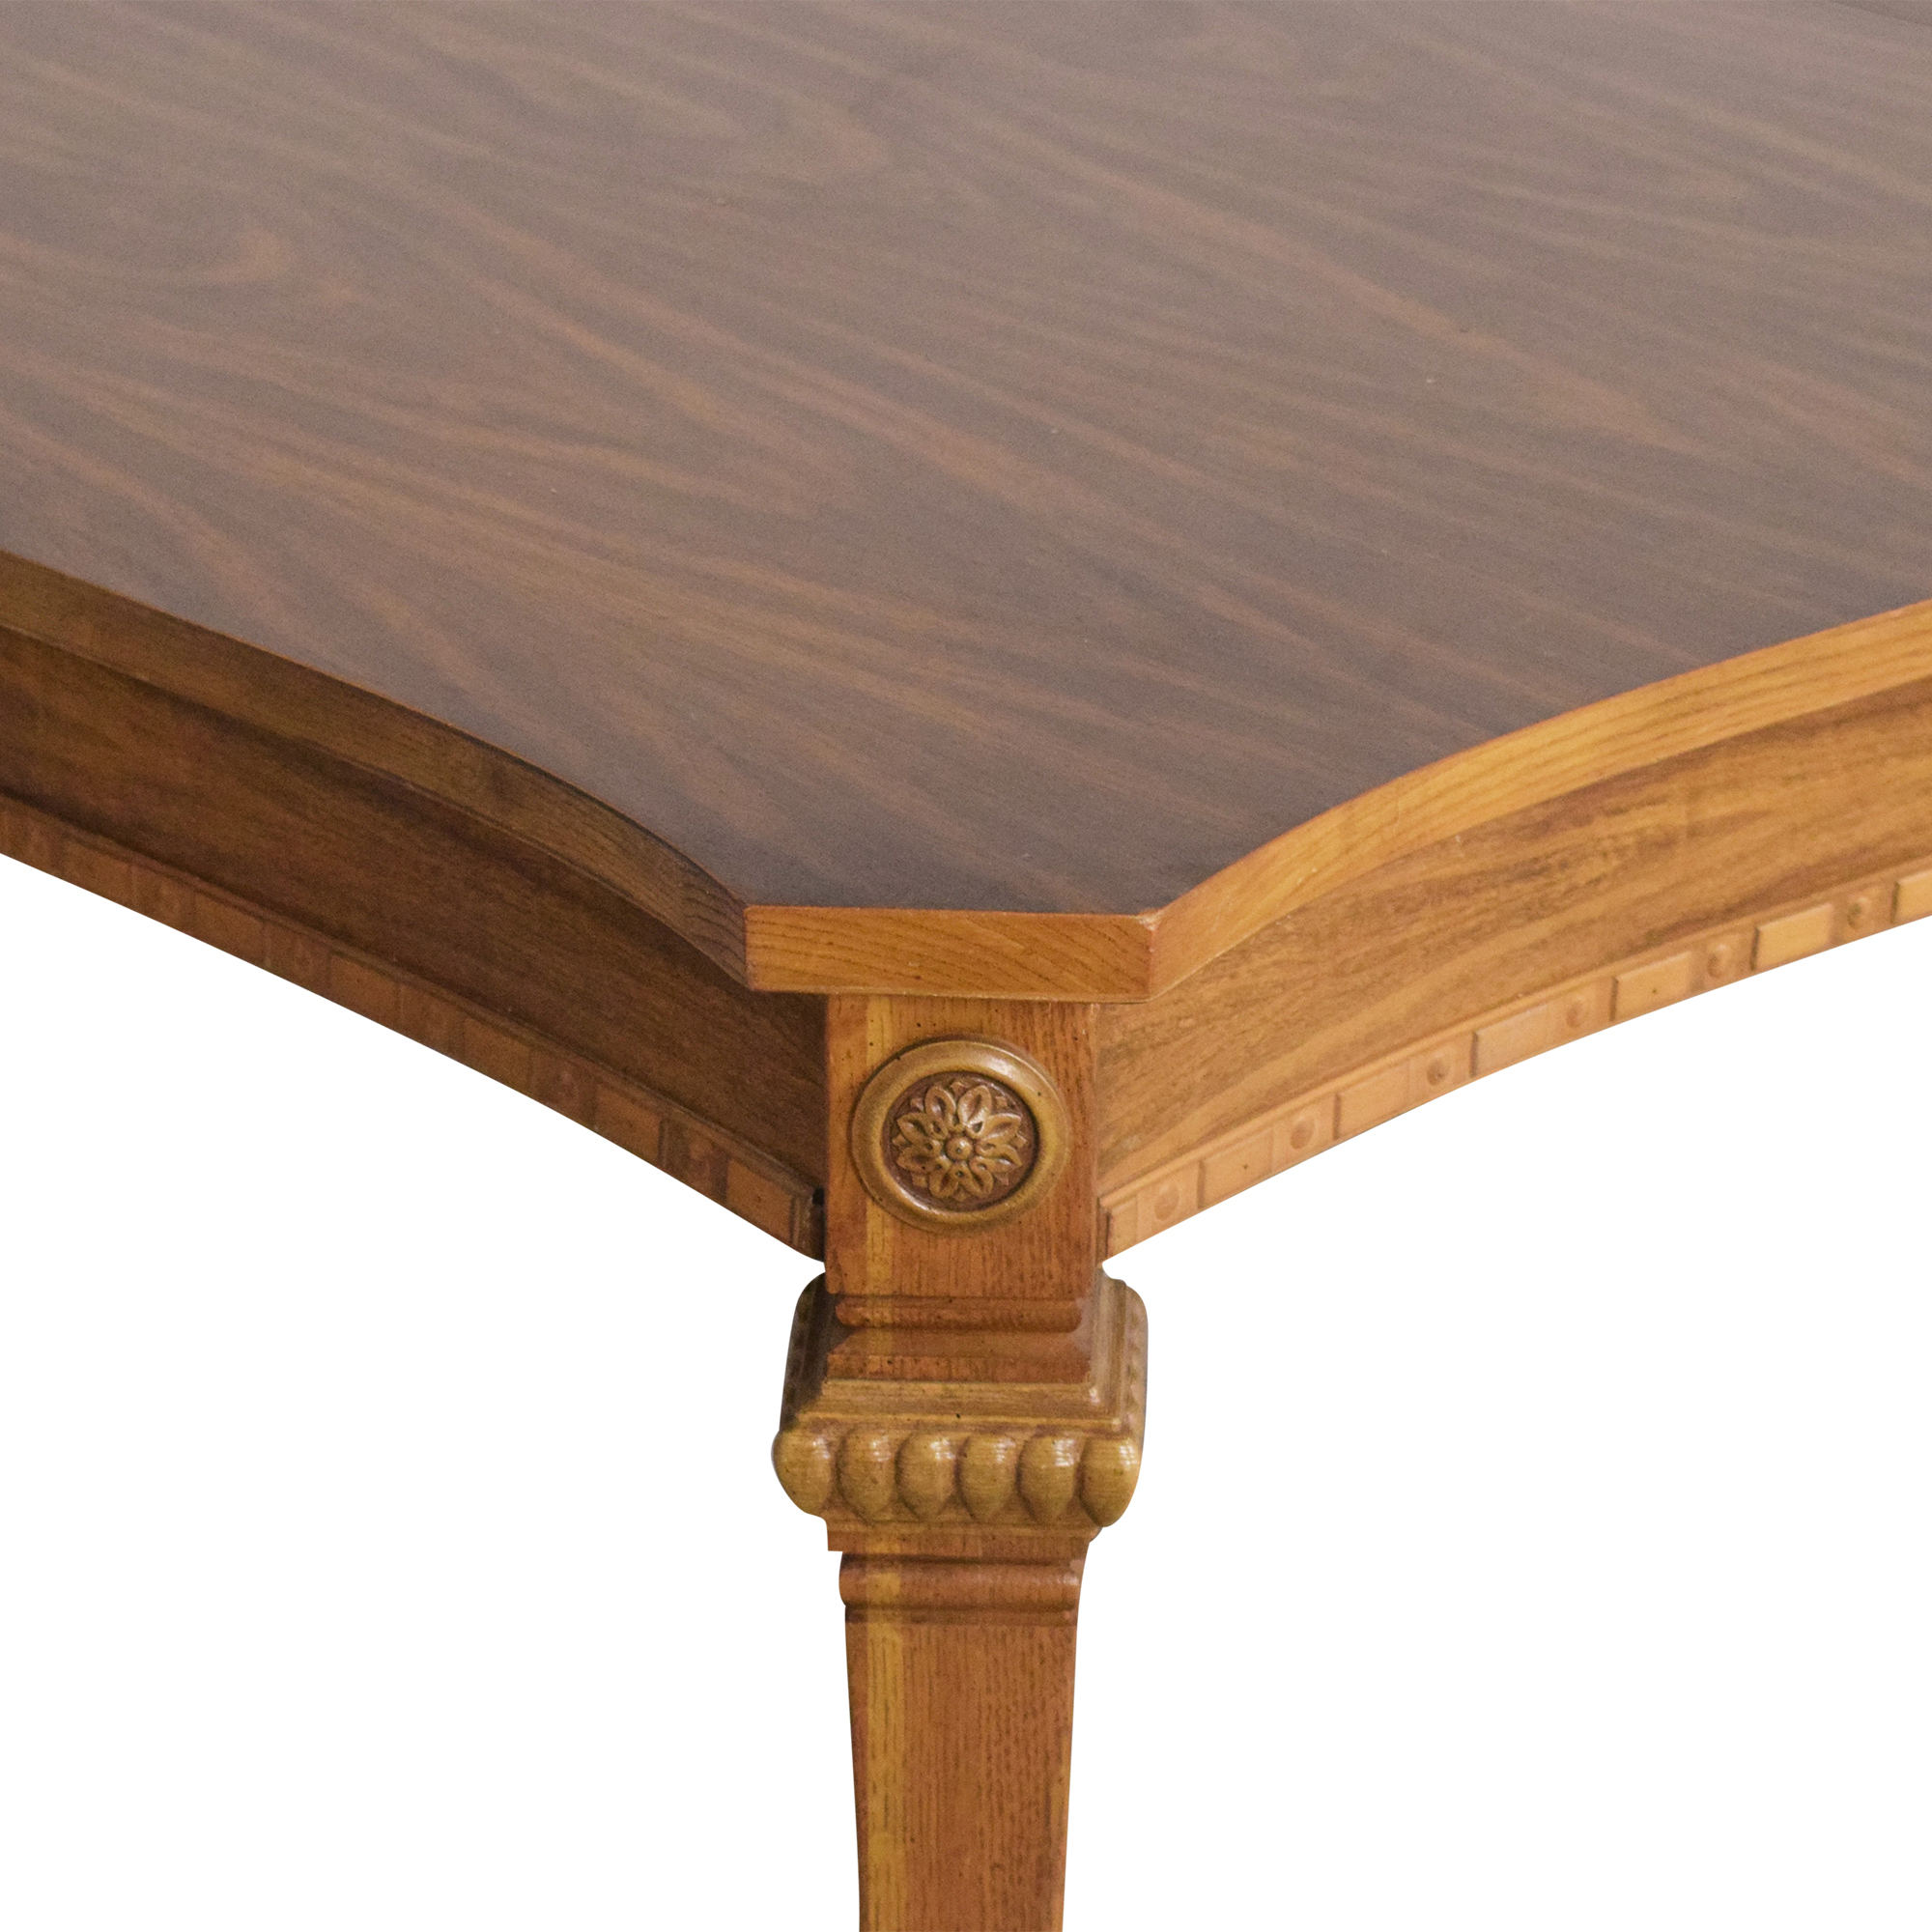 Extendable Dining Table dimensions